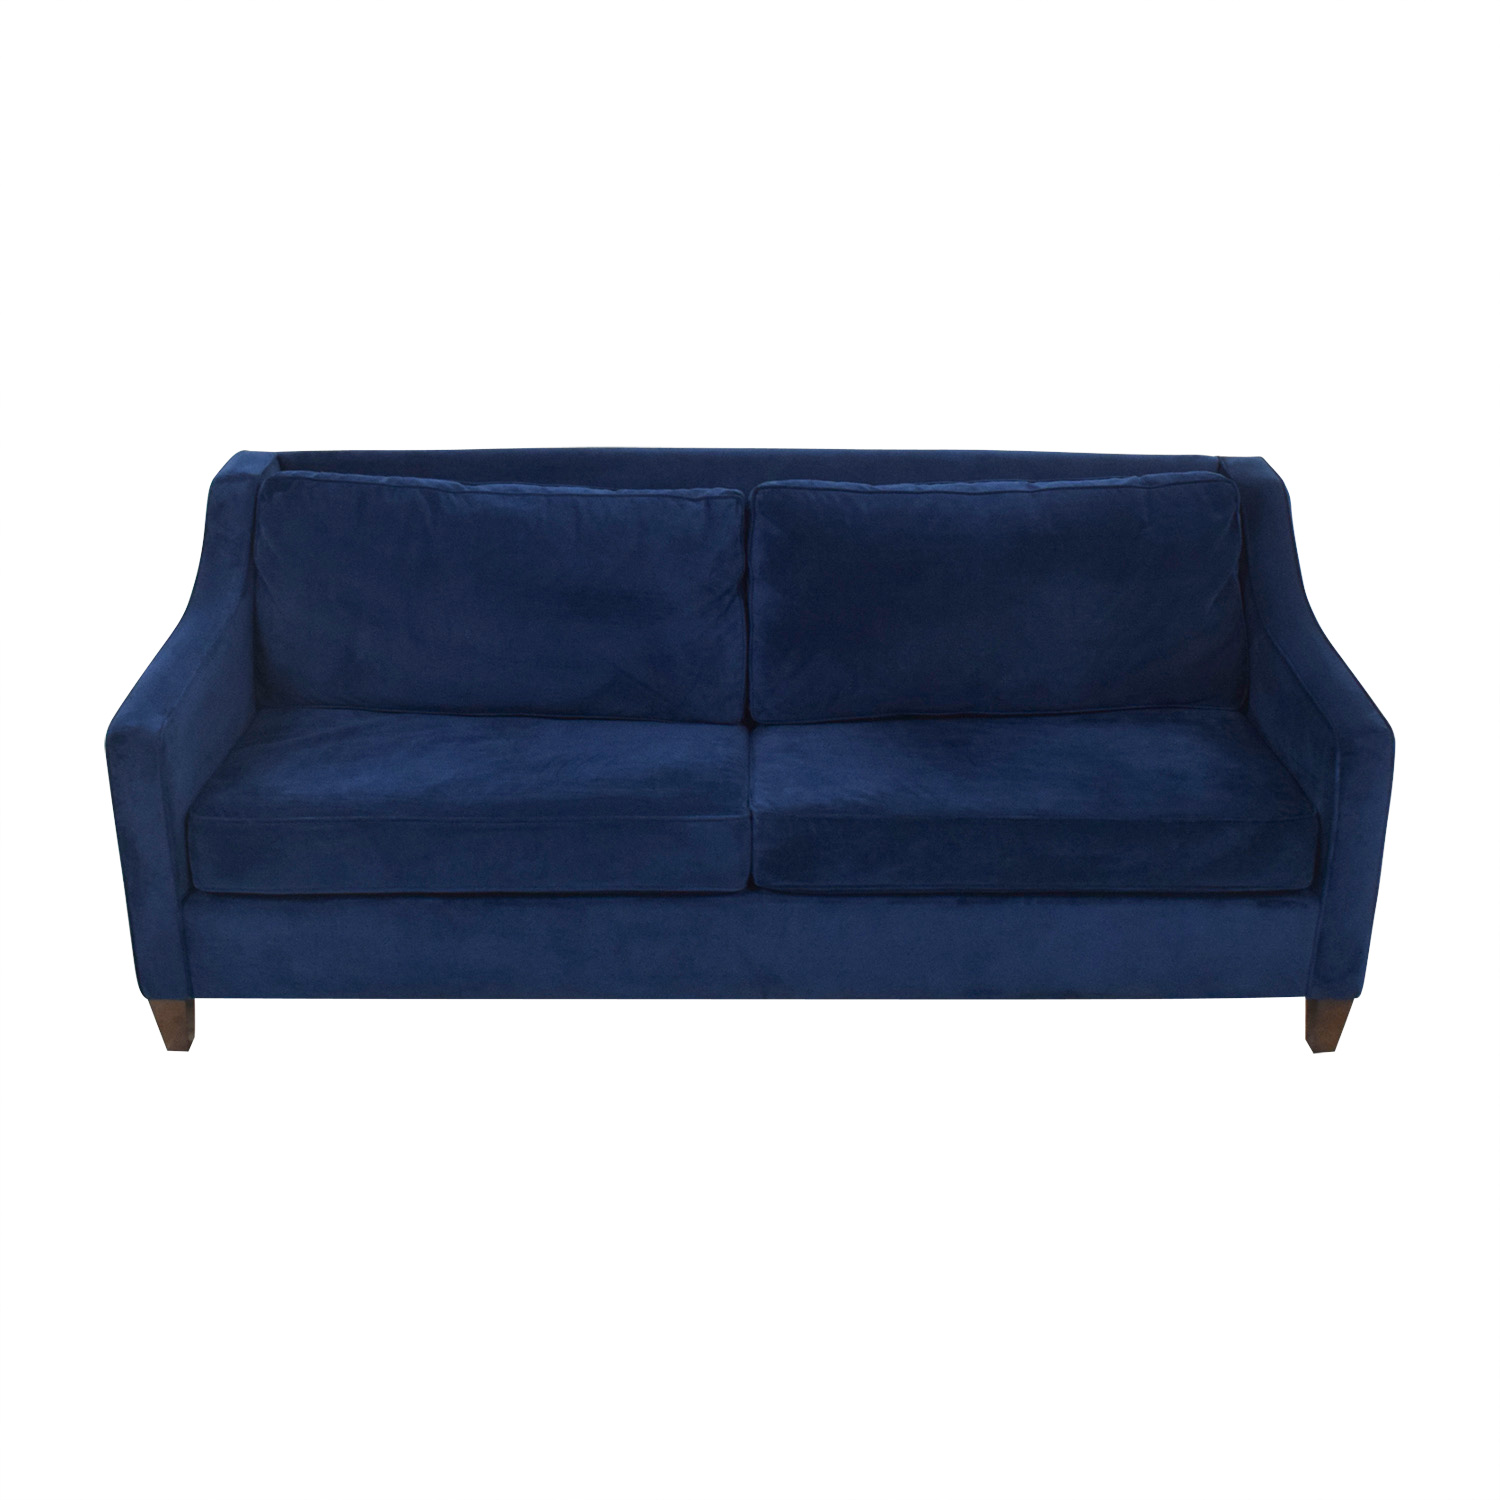 West Elm West Elm Paidge Queen Sleeper Sofa discount